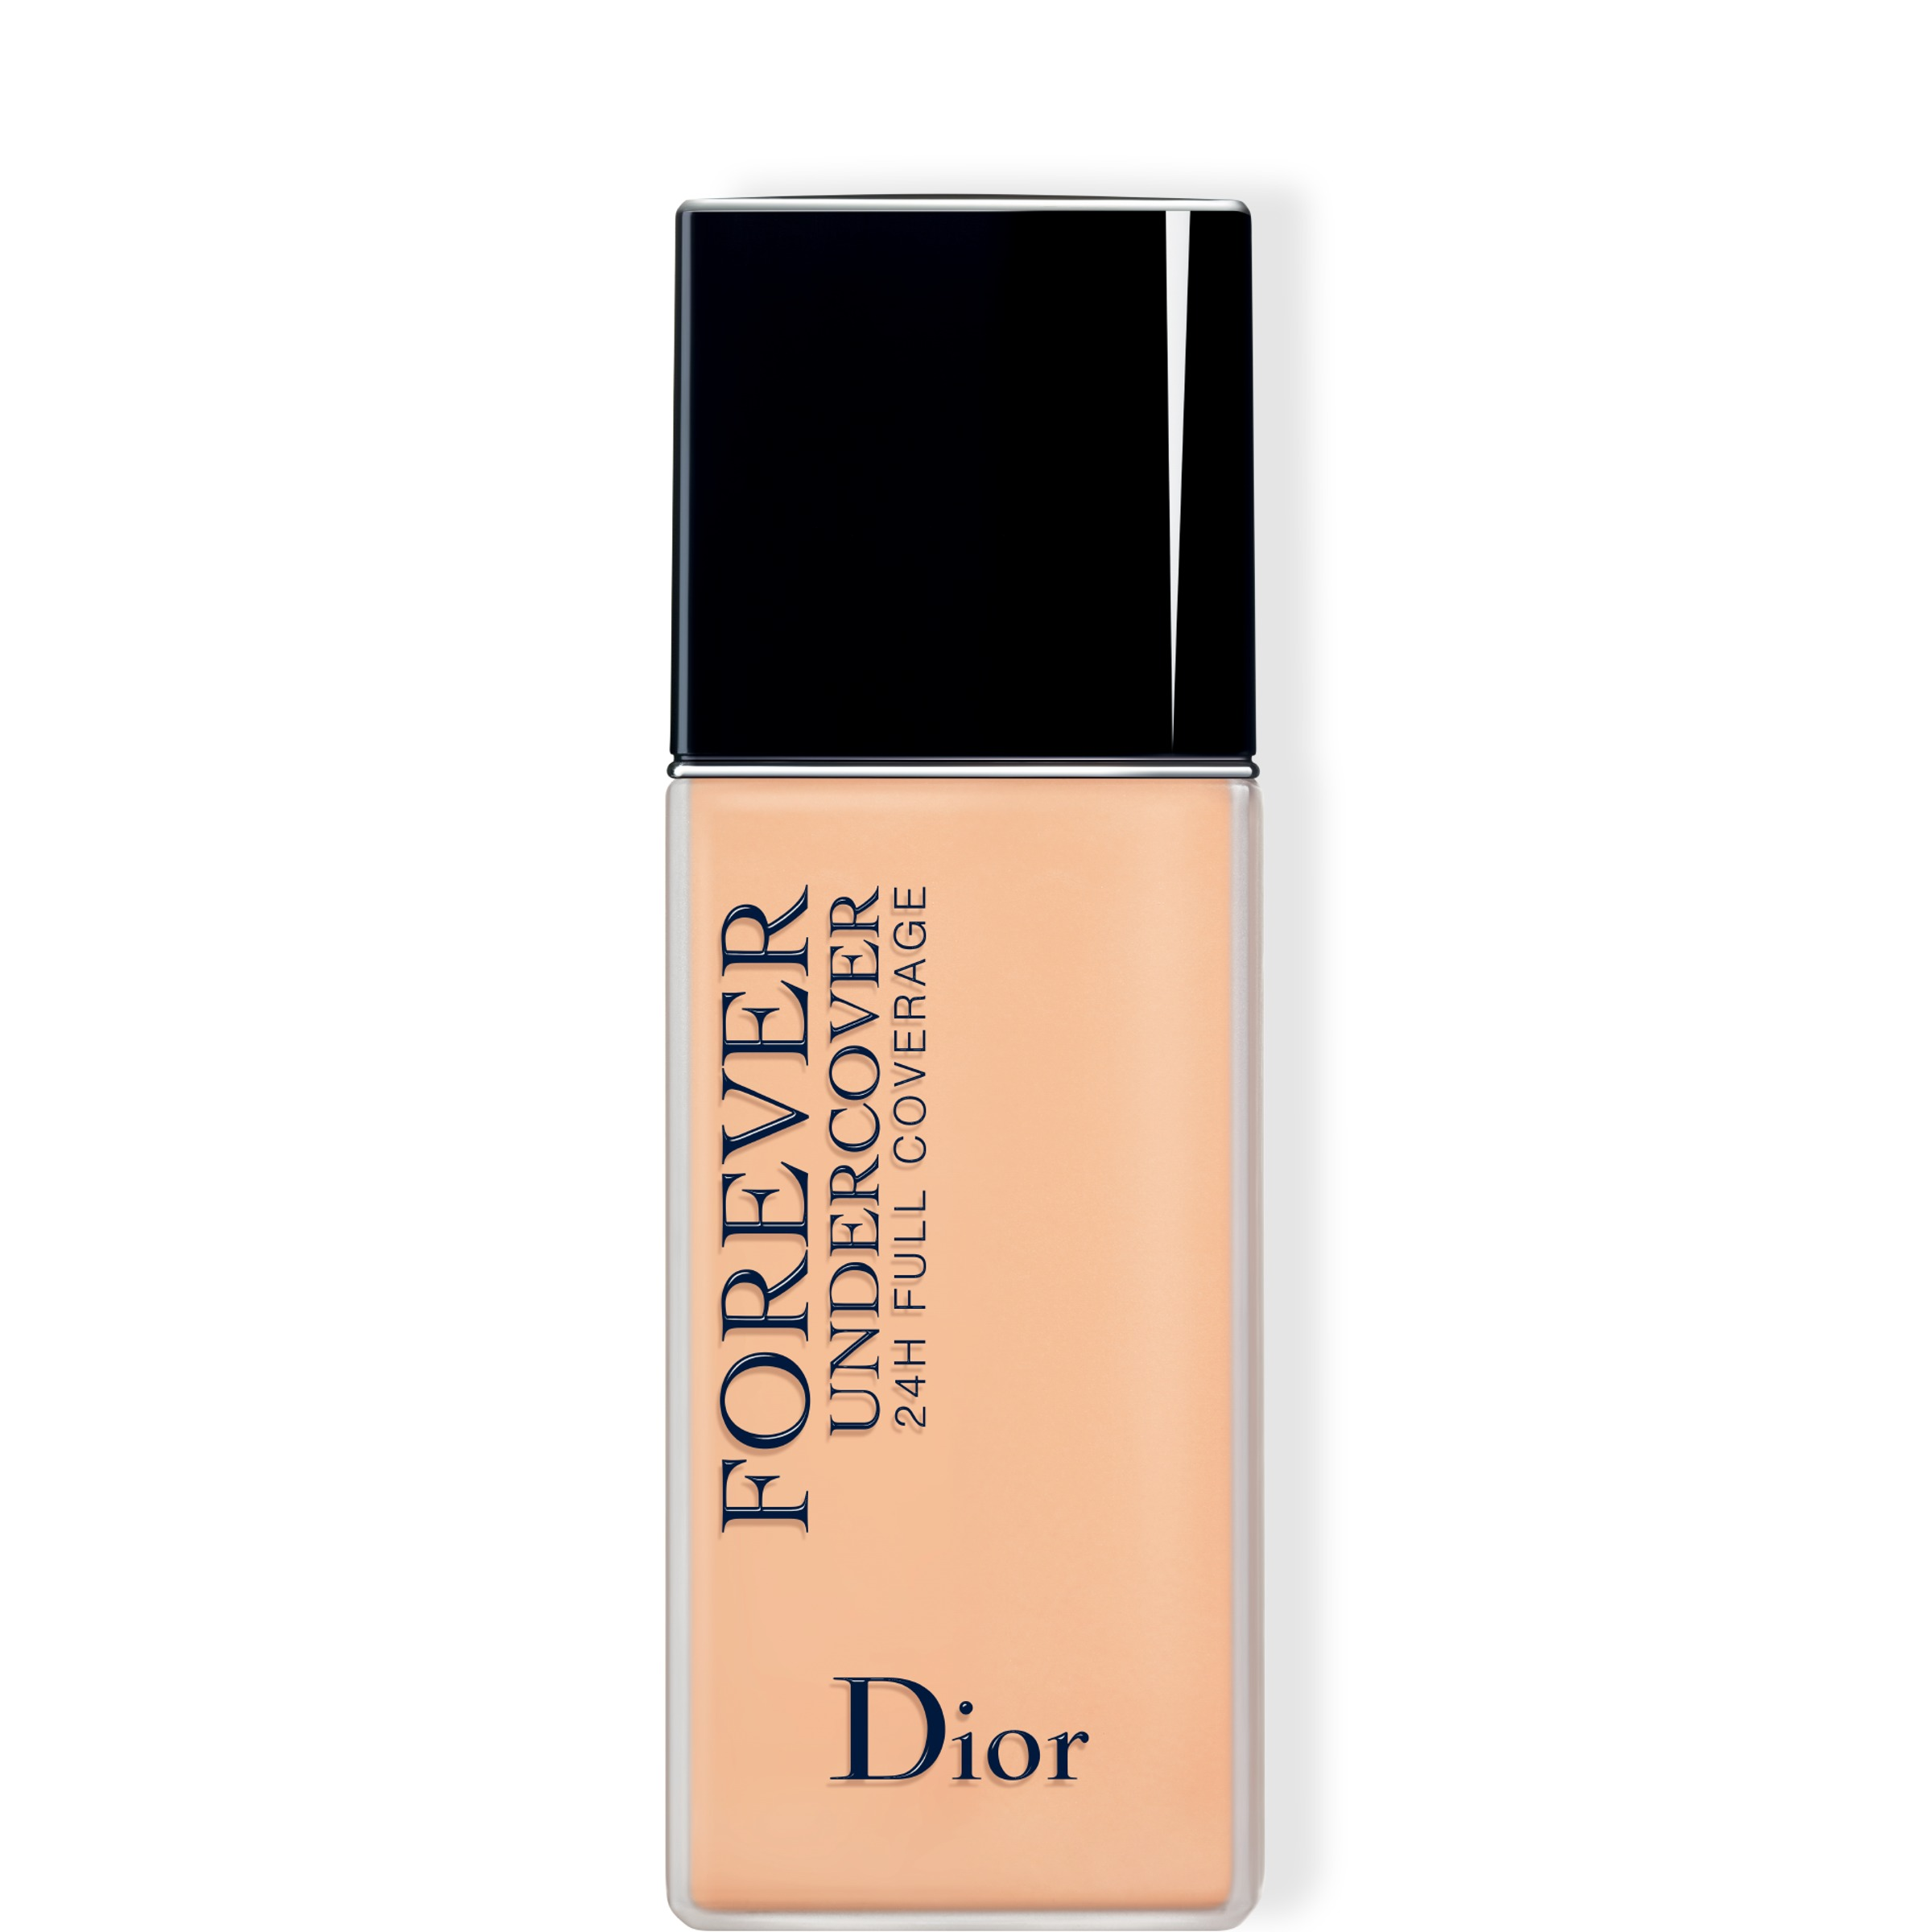 Diorskin Forever Undercover Foundation 23 Peach